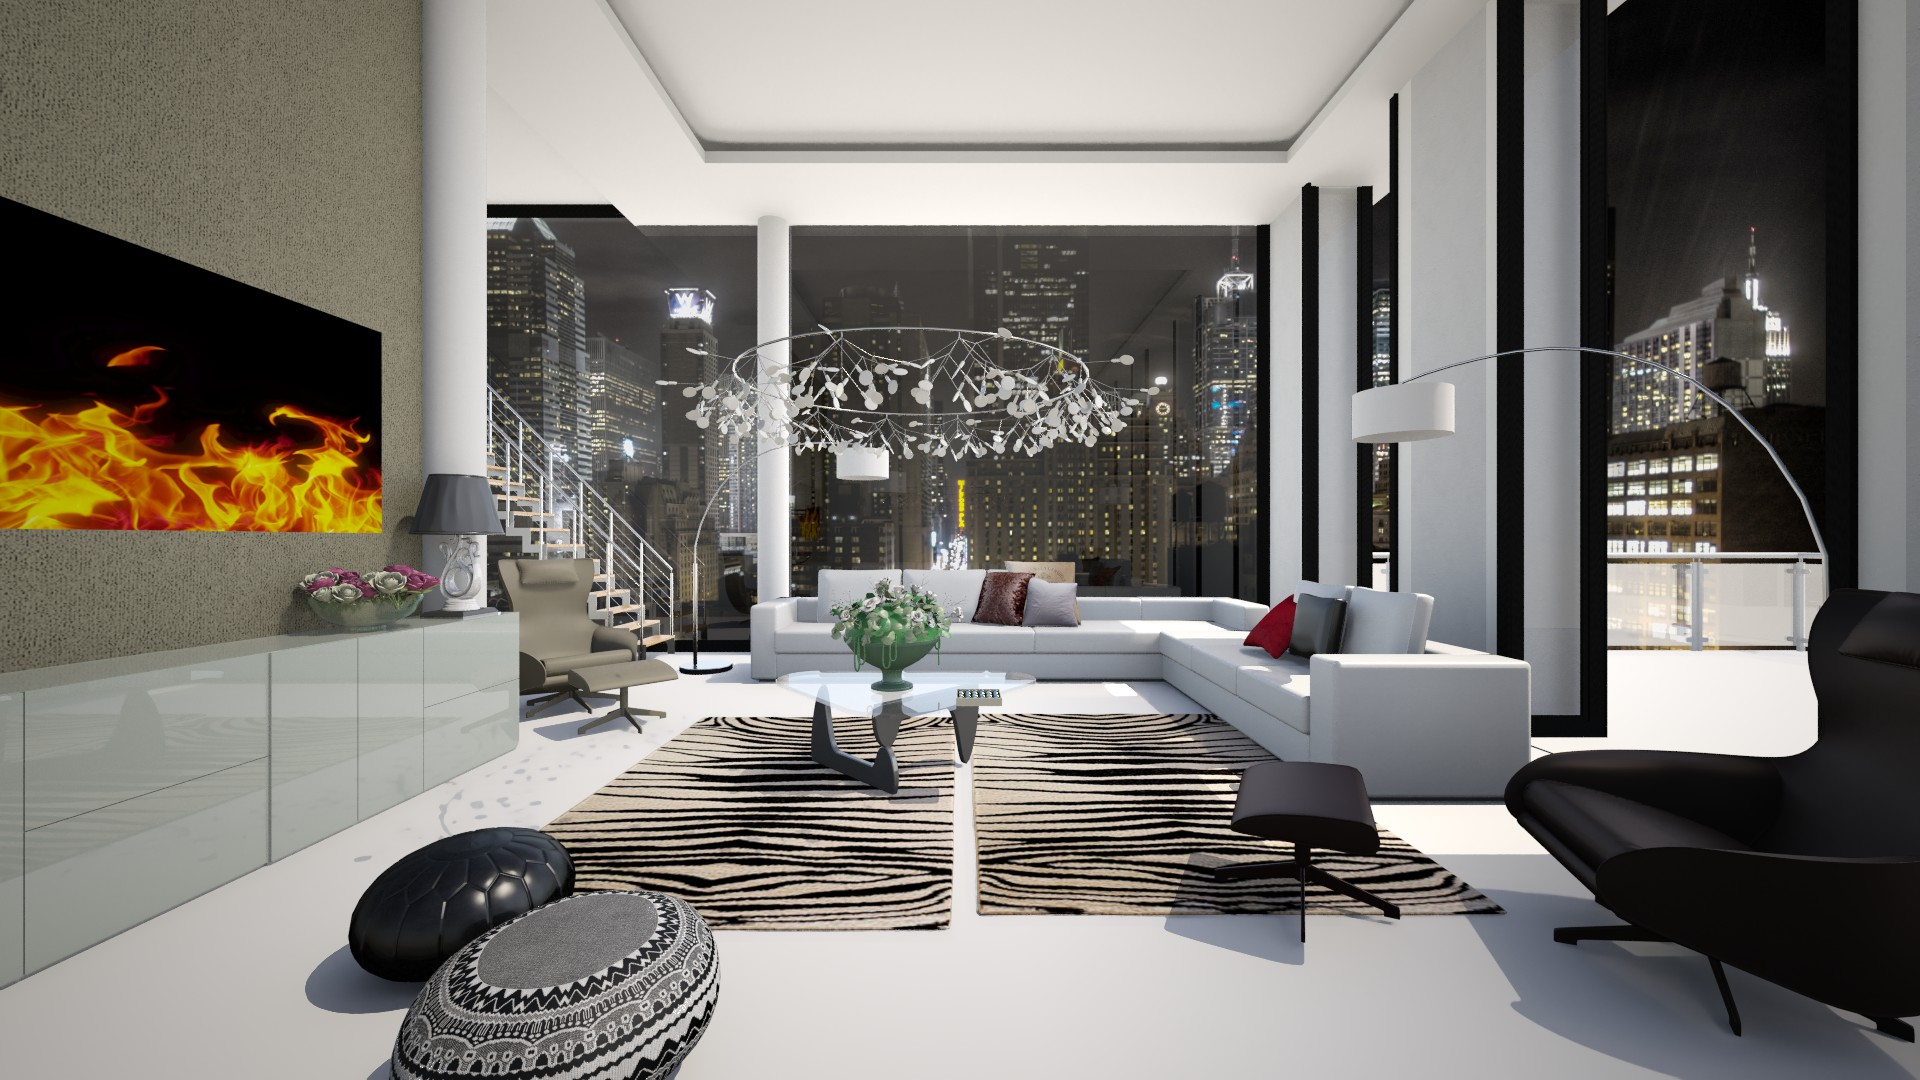 just full with stuffs - Modern - Living room - by i dont care